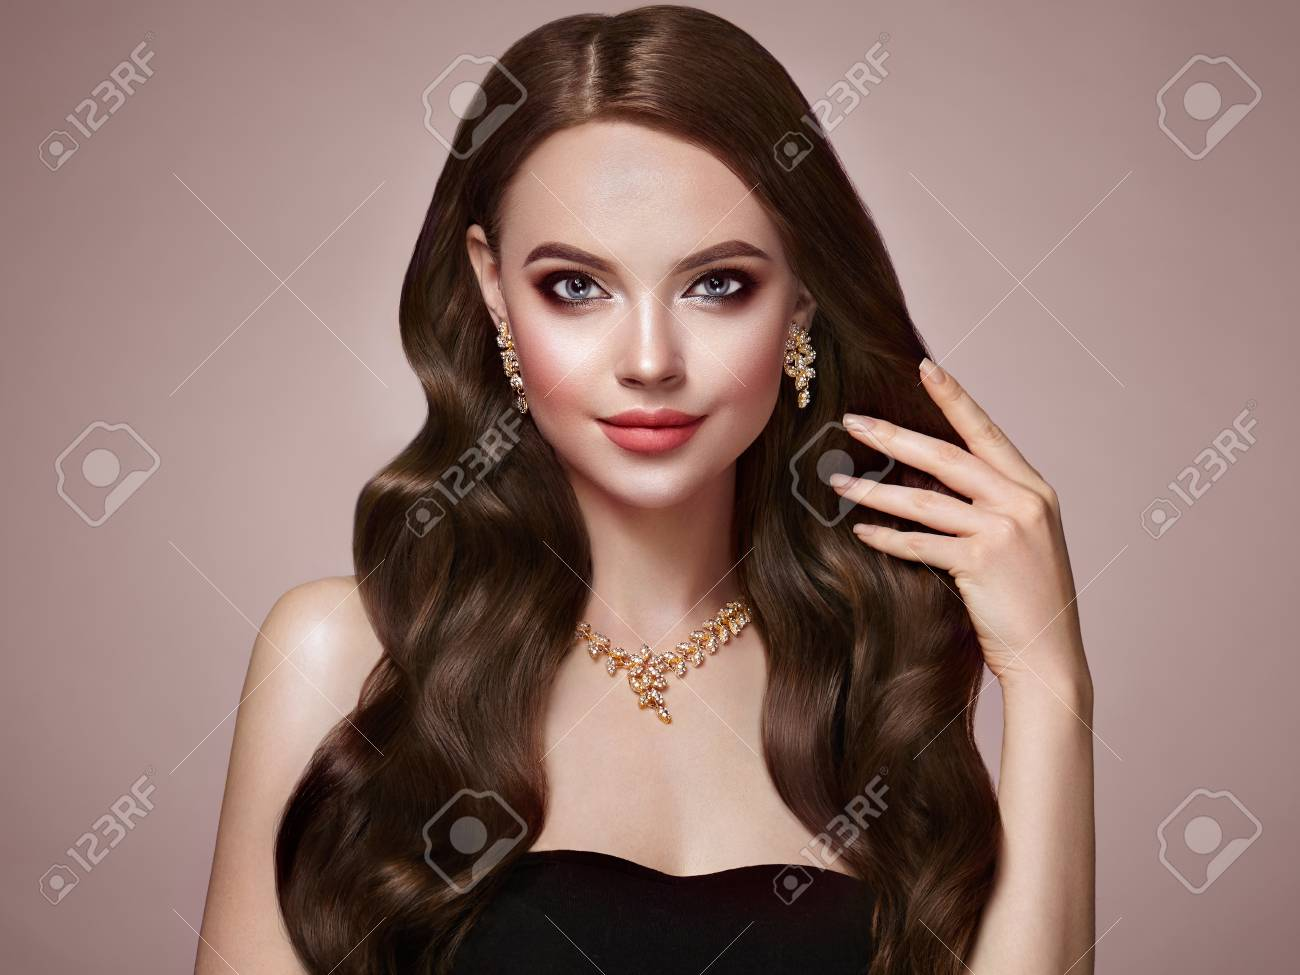 Brunette Girl with Long Healthy and Shiny Curly Hair. Care and Beauty. Beautiful Model Woman with Wavy Hairstyle. Make-Up and Jewelry - 103367398